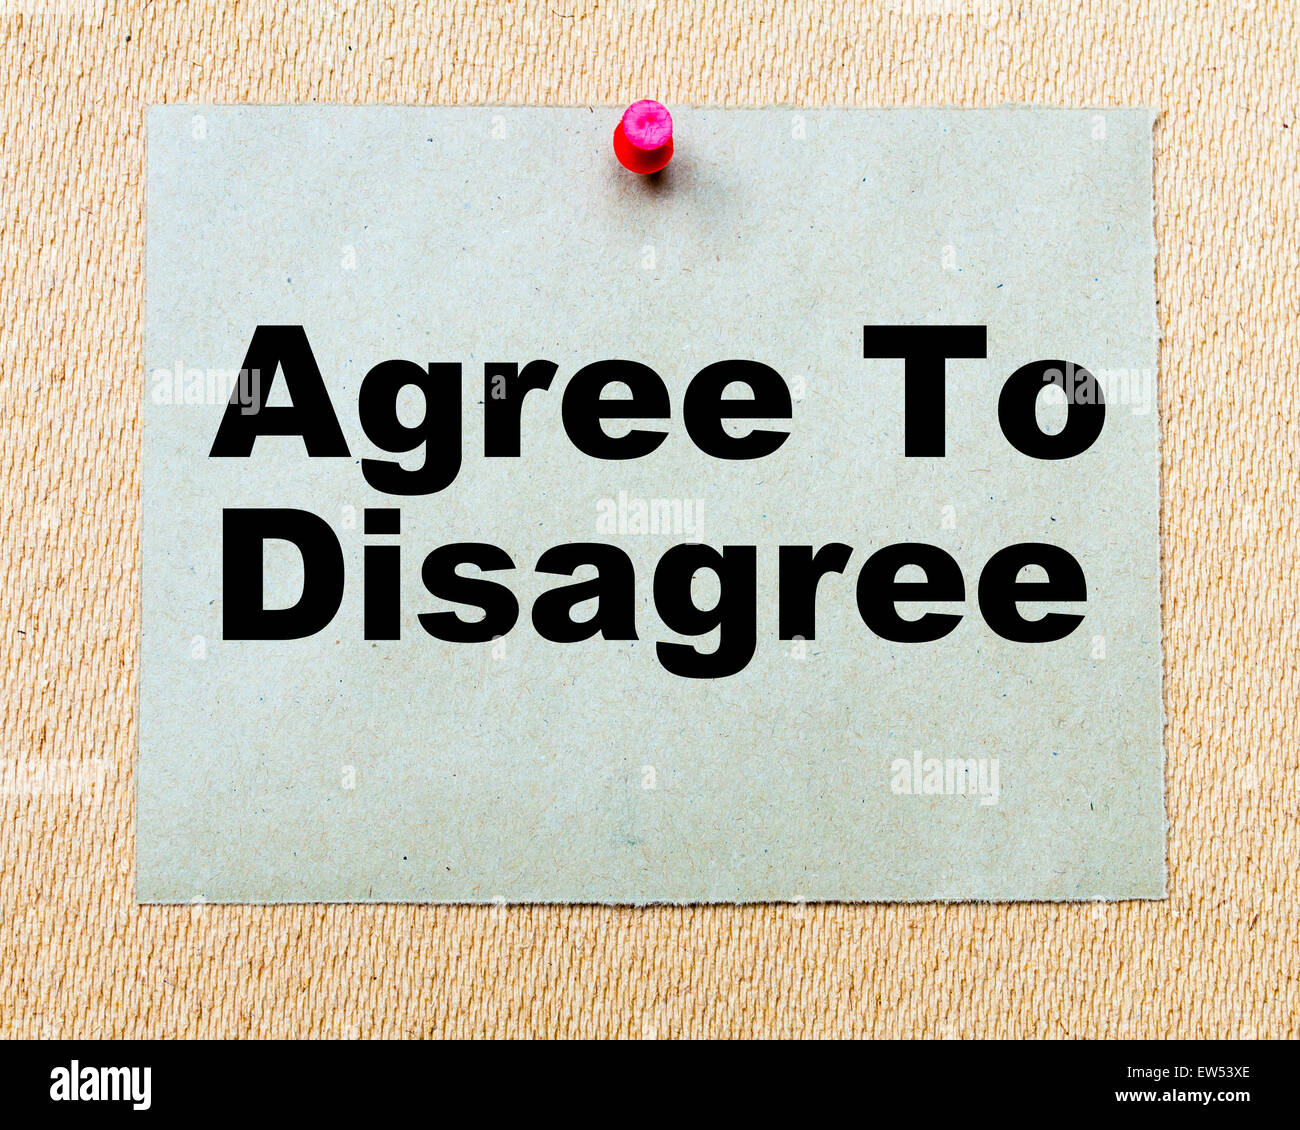 Agree To Disagree written on paper note pinned with red thumbtack on wooden board. Business conceptual Image - Stock Image